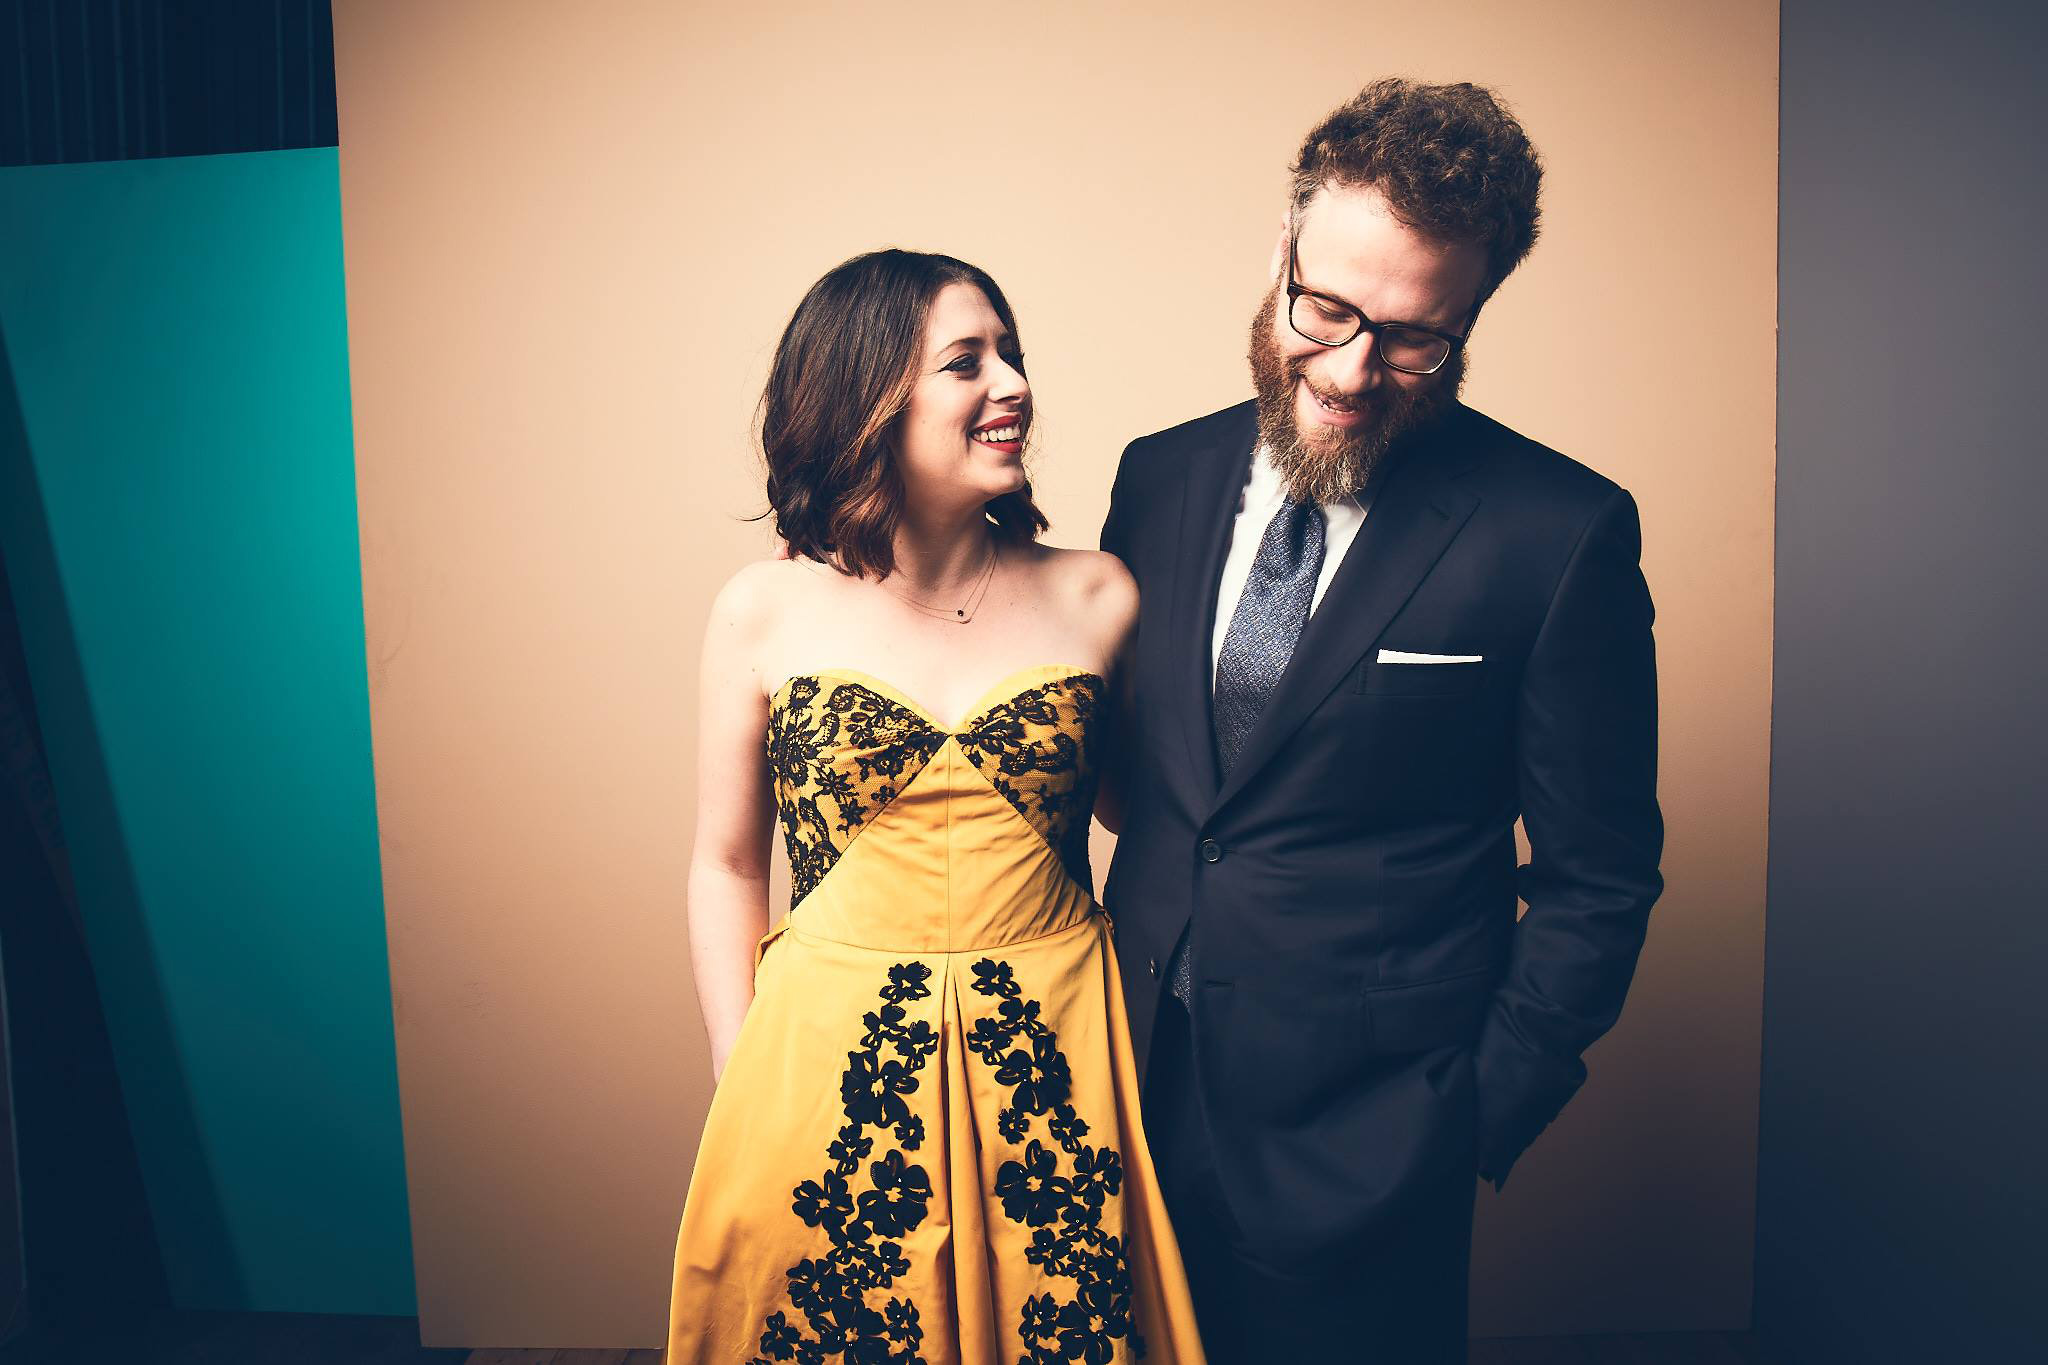 Lauren Miller Rogen and Seth Rogen founded Hilarity for Charity in 2012. Photo courtesy Hilarity for Charity and Getty Events.